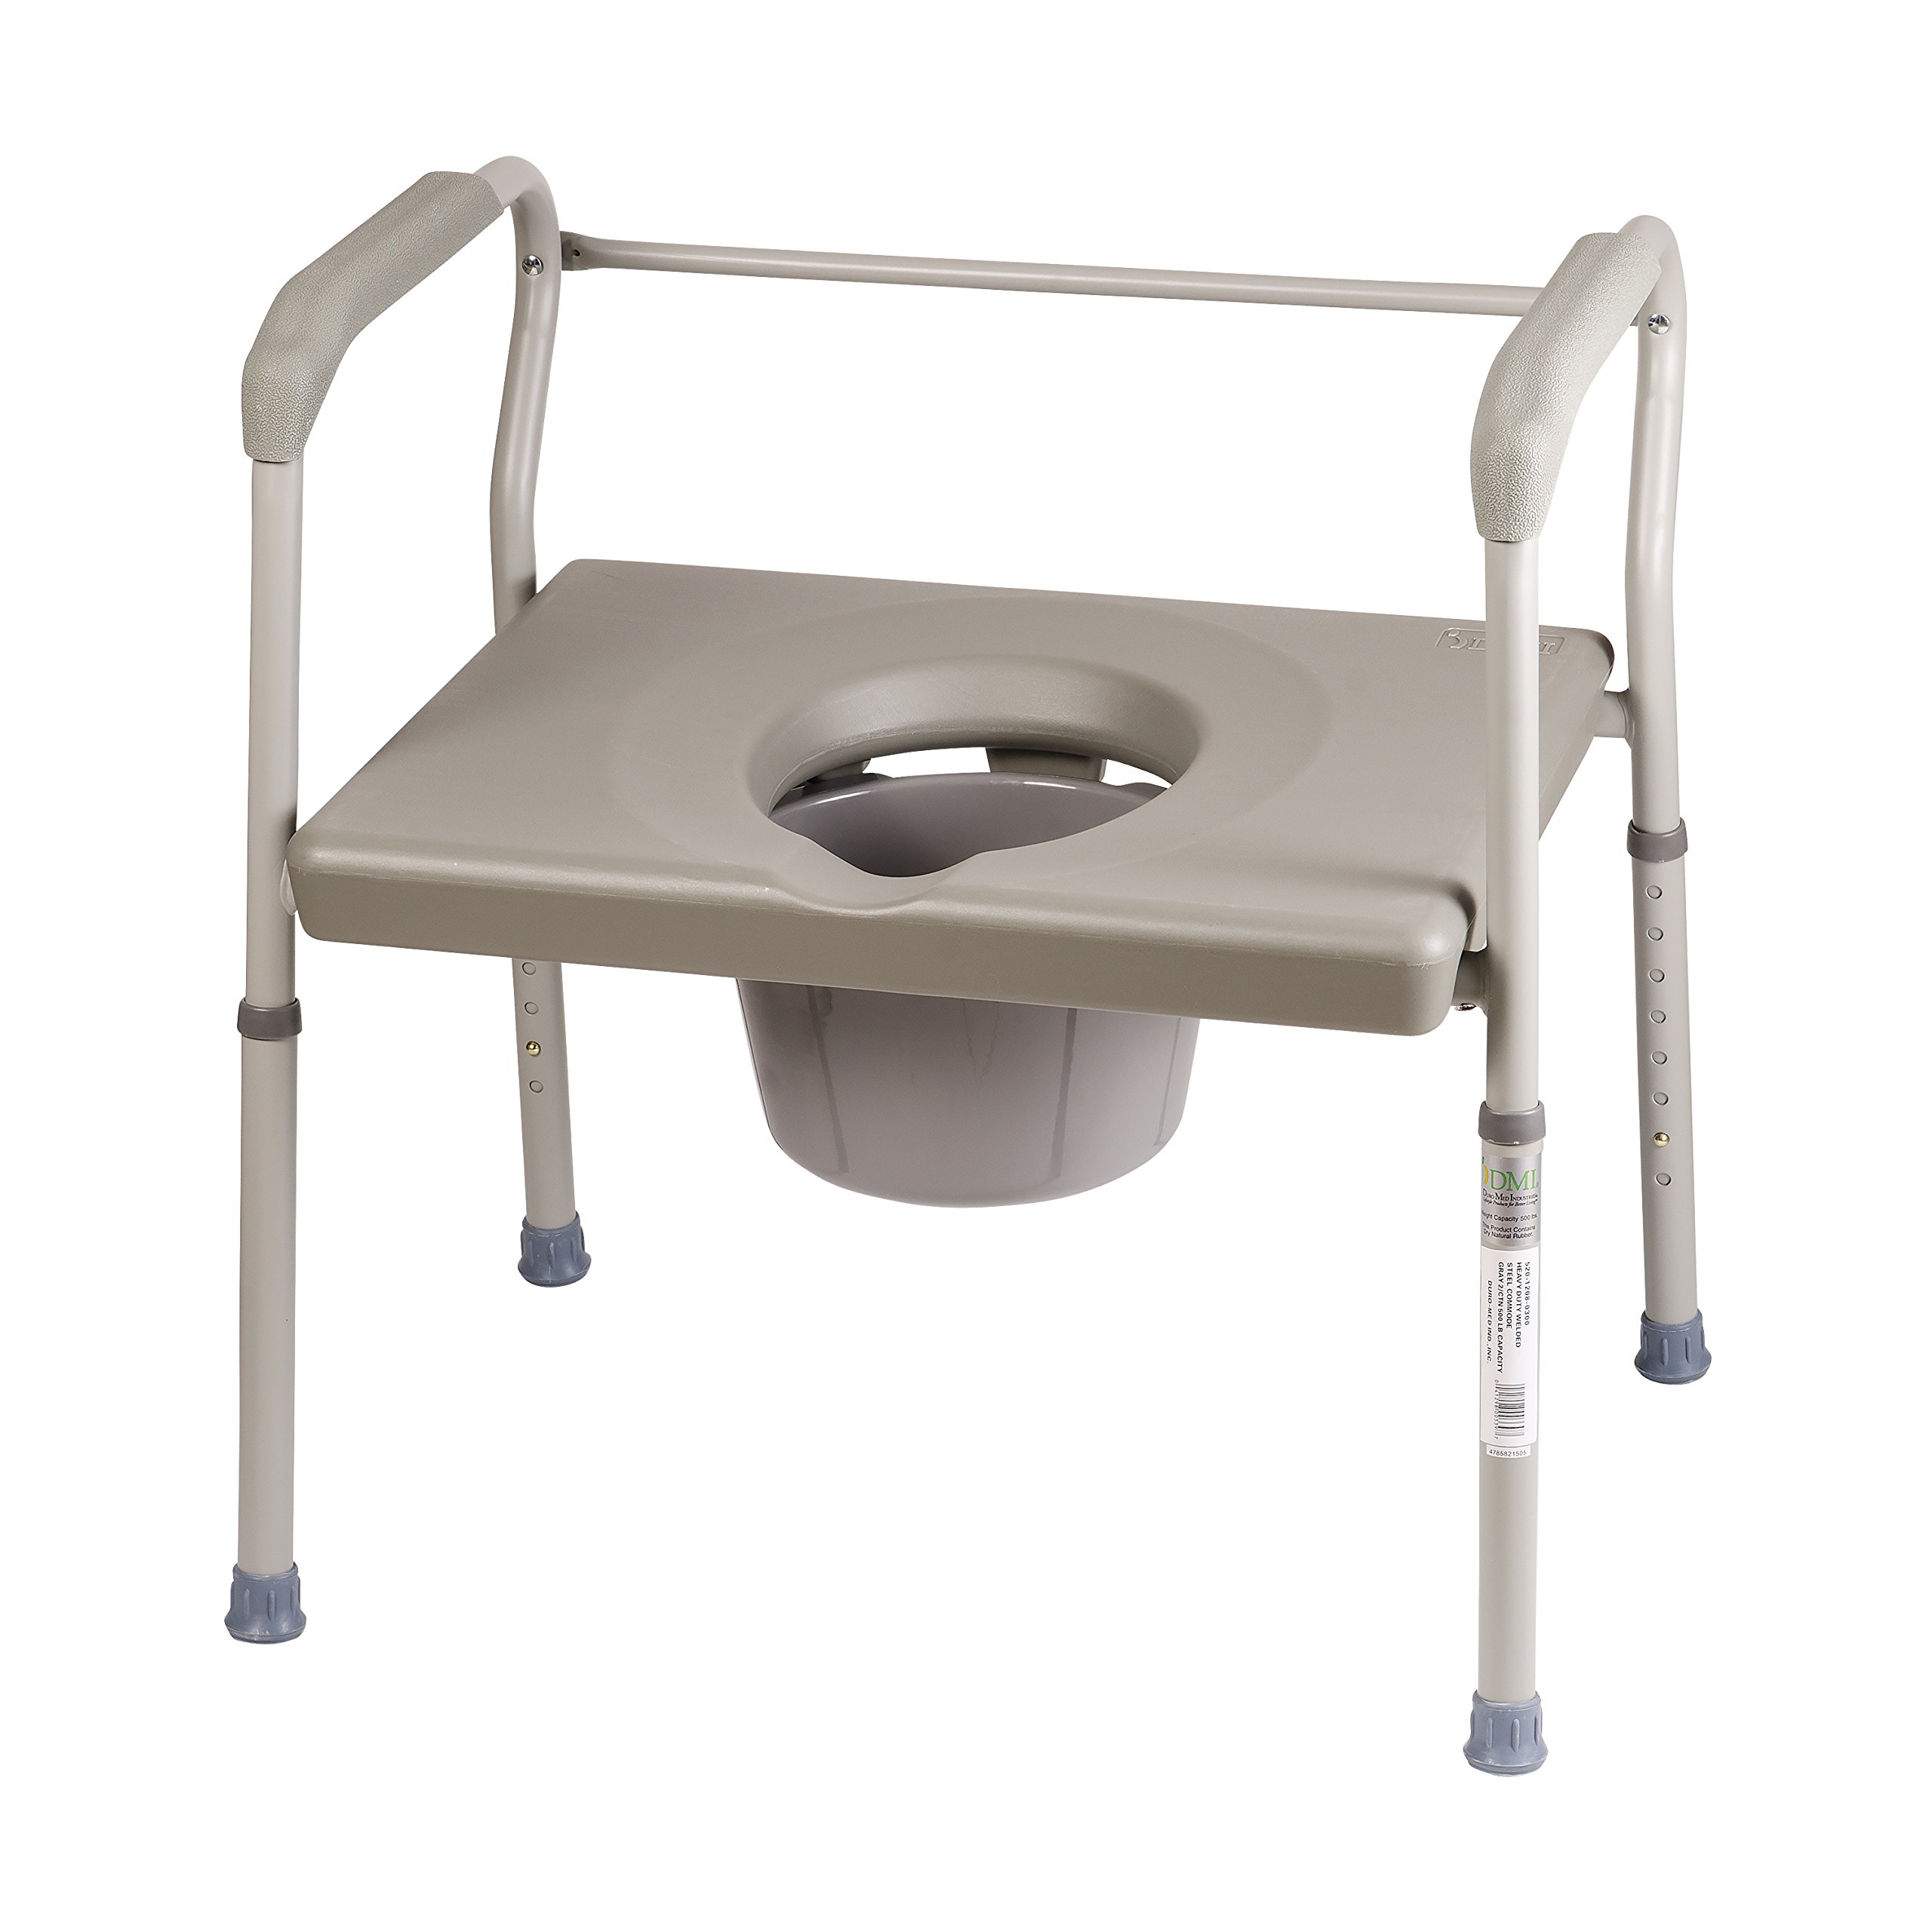 DMI Adjustable Bedside Commode for Adults Can Be Used with Included 7 Quart Pail or as a Toilet Riser and Toilet Safety Frame Easily Fitting Over Standard Toilet, 500lb Weight Capacity by Duro-Med